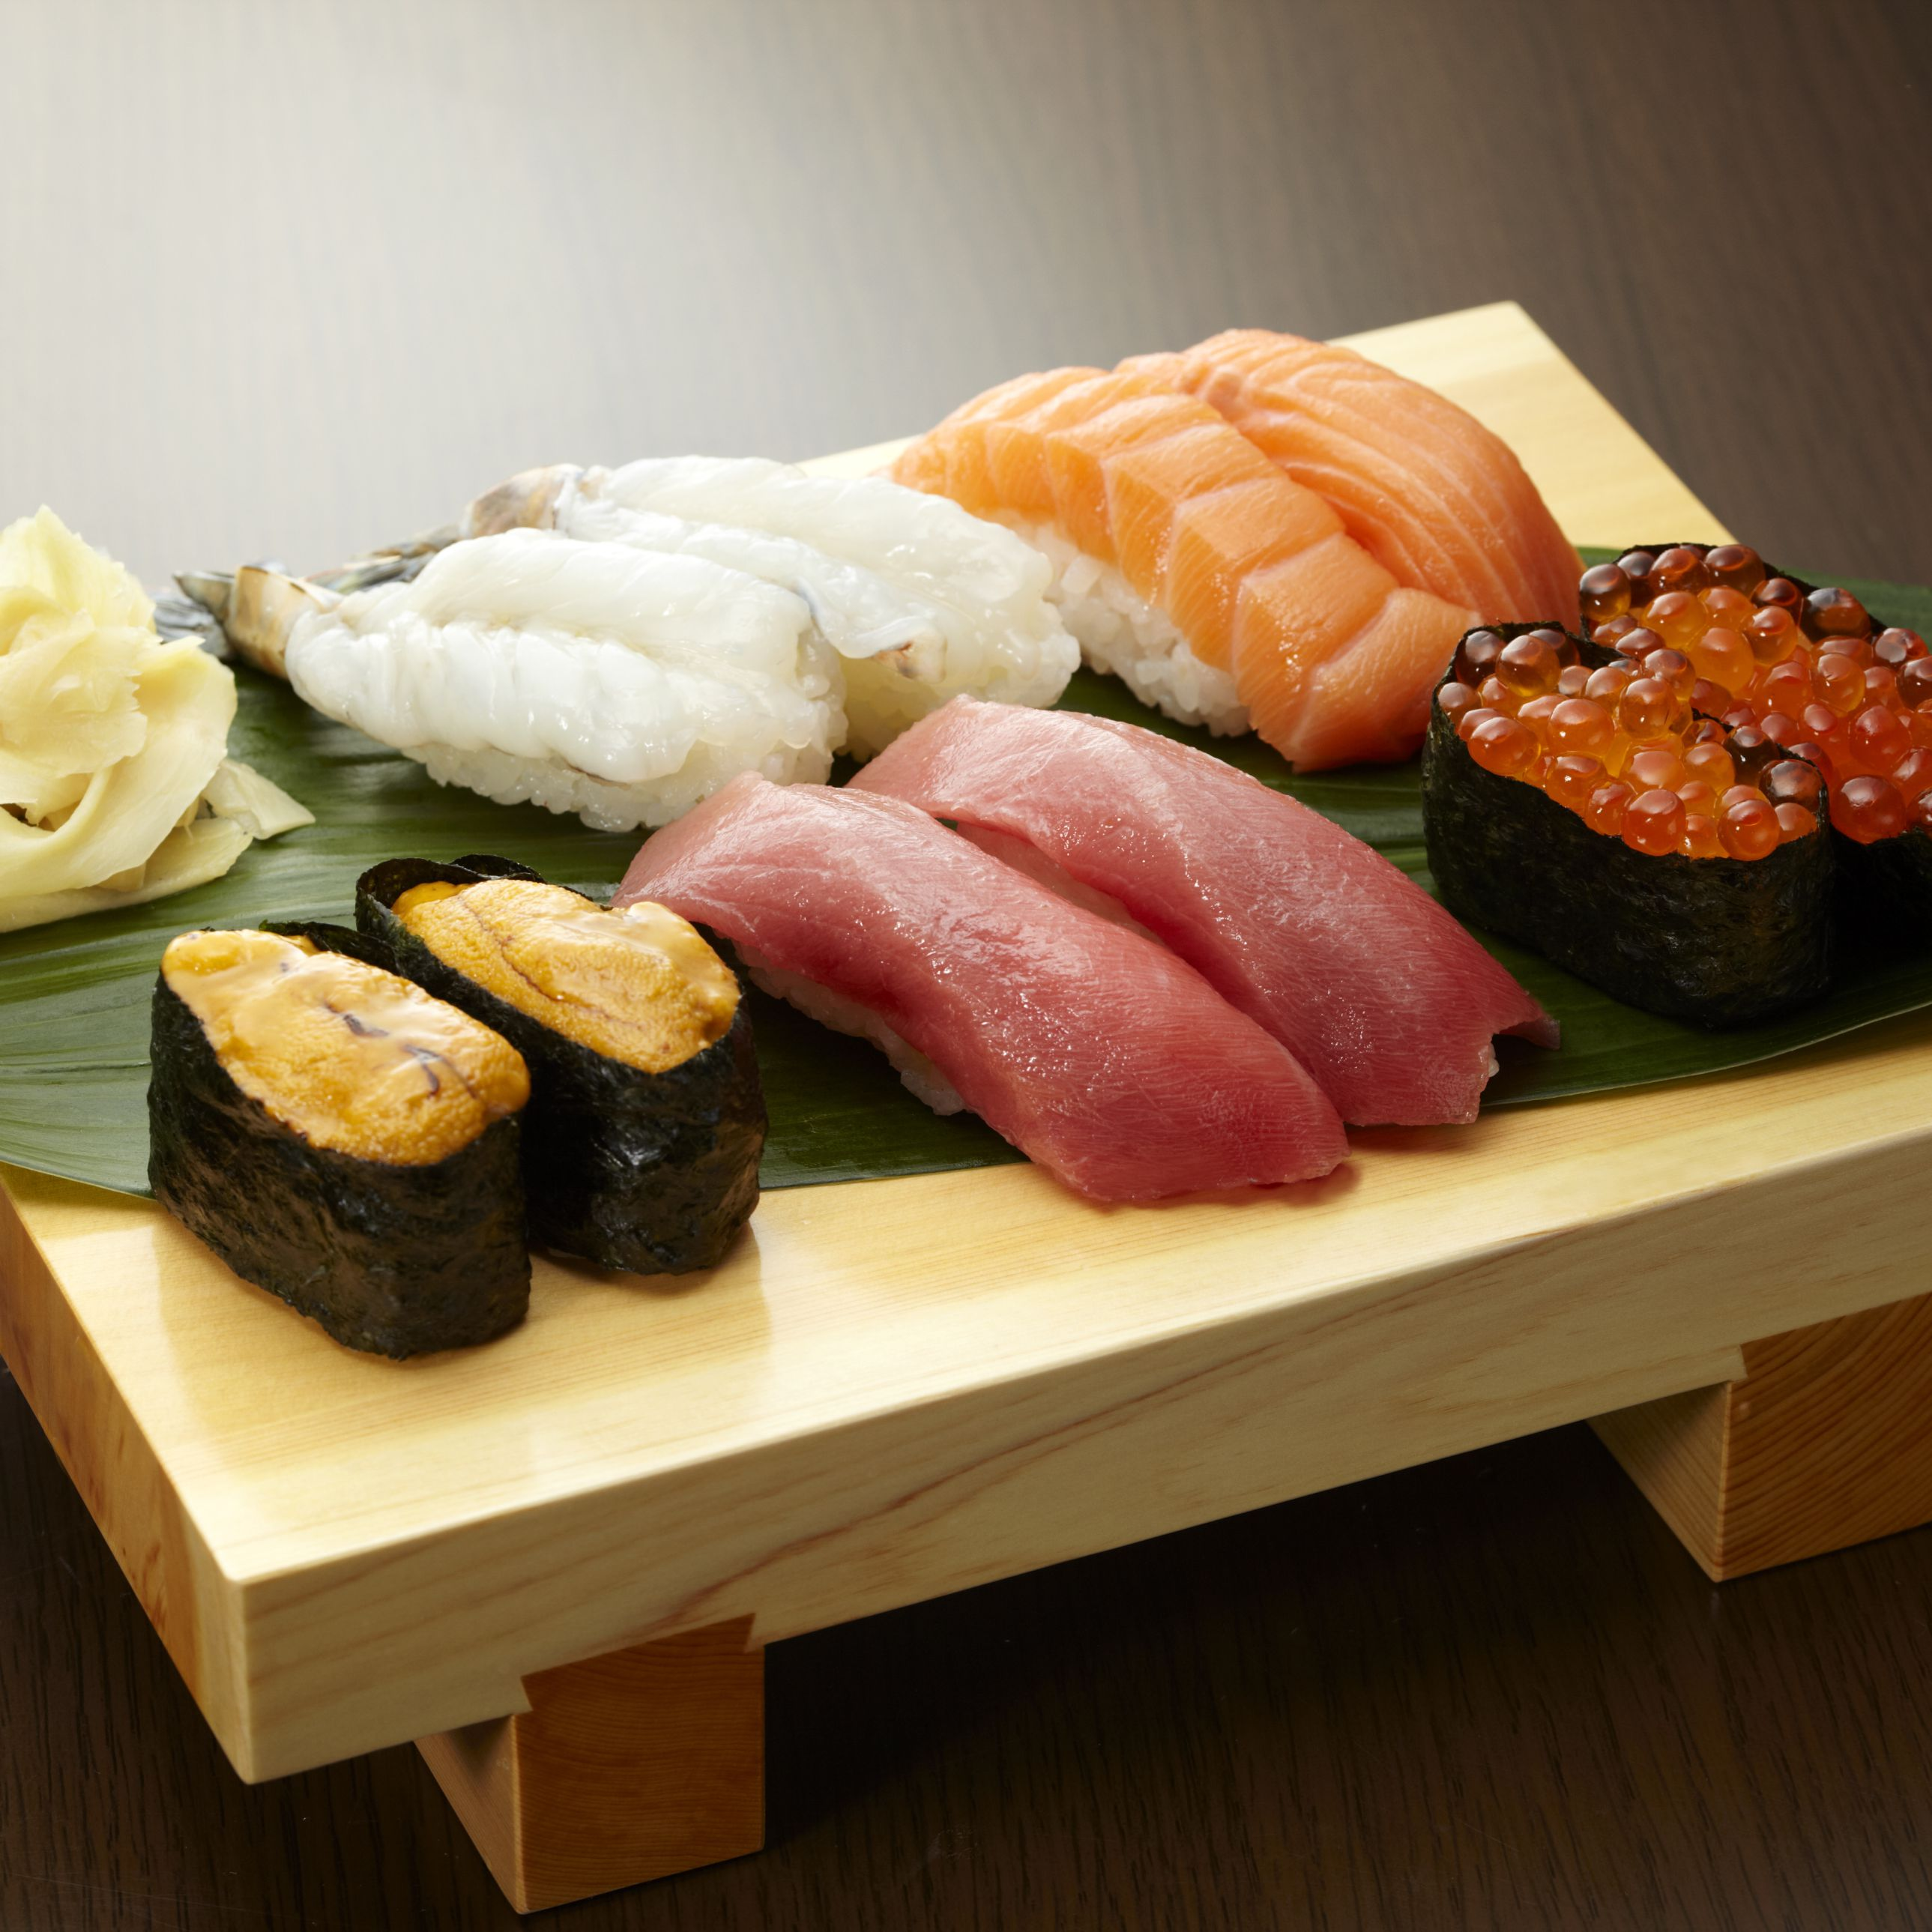 Is Sushi Gluten Free Learn The Types Of Sushi To Order